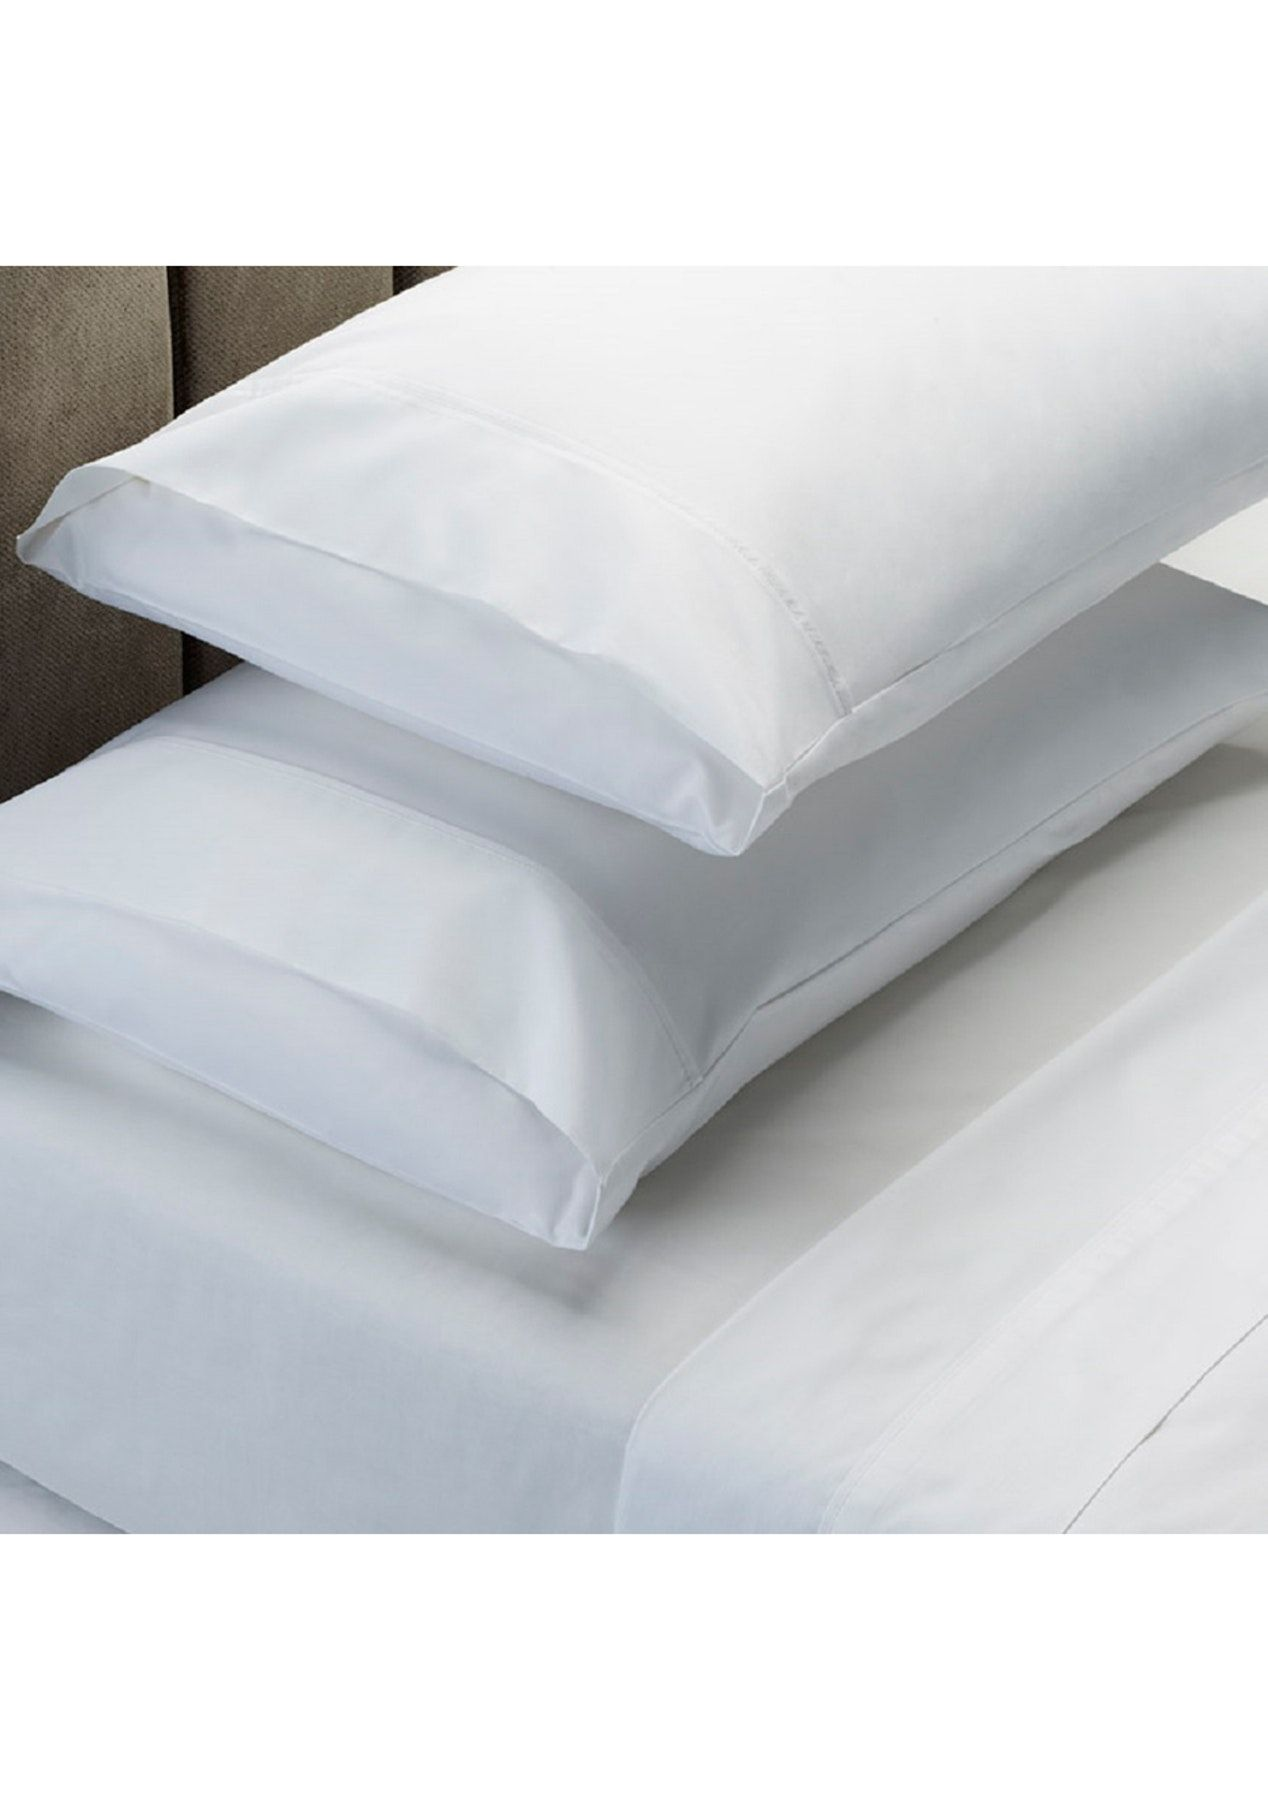 Park Avenue 1000 Thread Count Egyptian Cotton Sheet Sets Queen White Free Shipping Bedding Best Ers Onceit